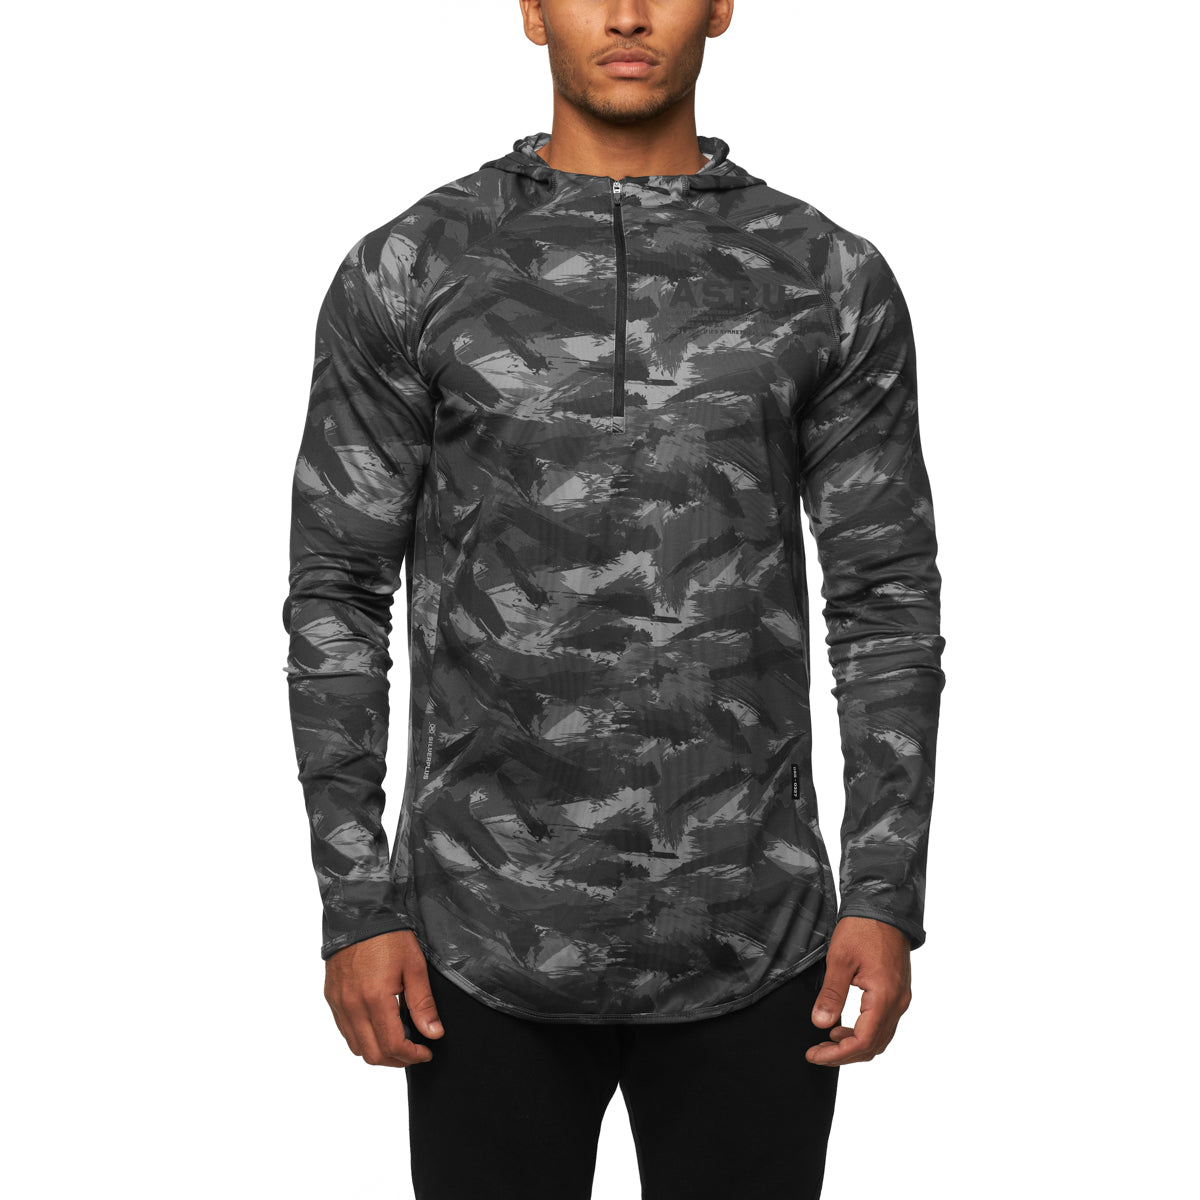 0327. SilverPlus® Fitted Hoodie - Black Brushed Camo